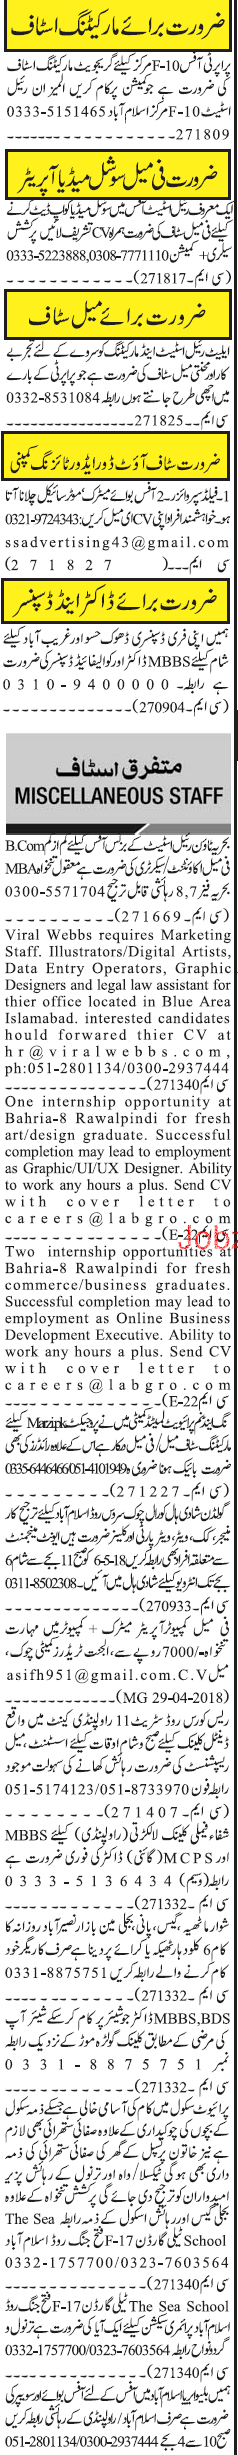 Marketing Staff, Social Media Operators Job Opportunity